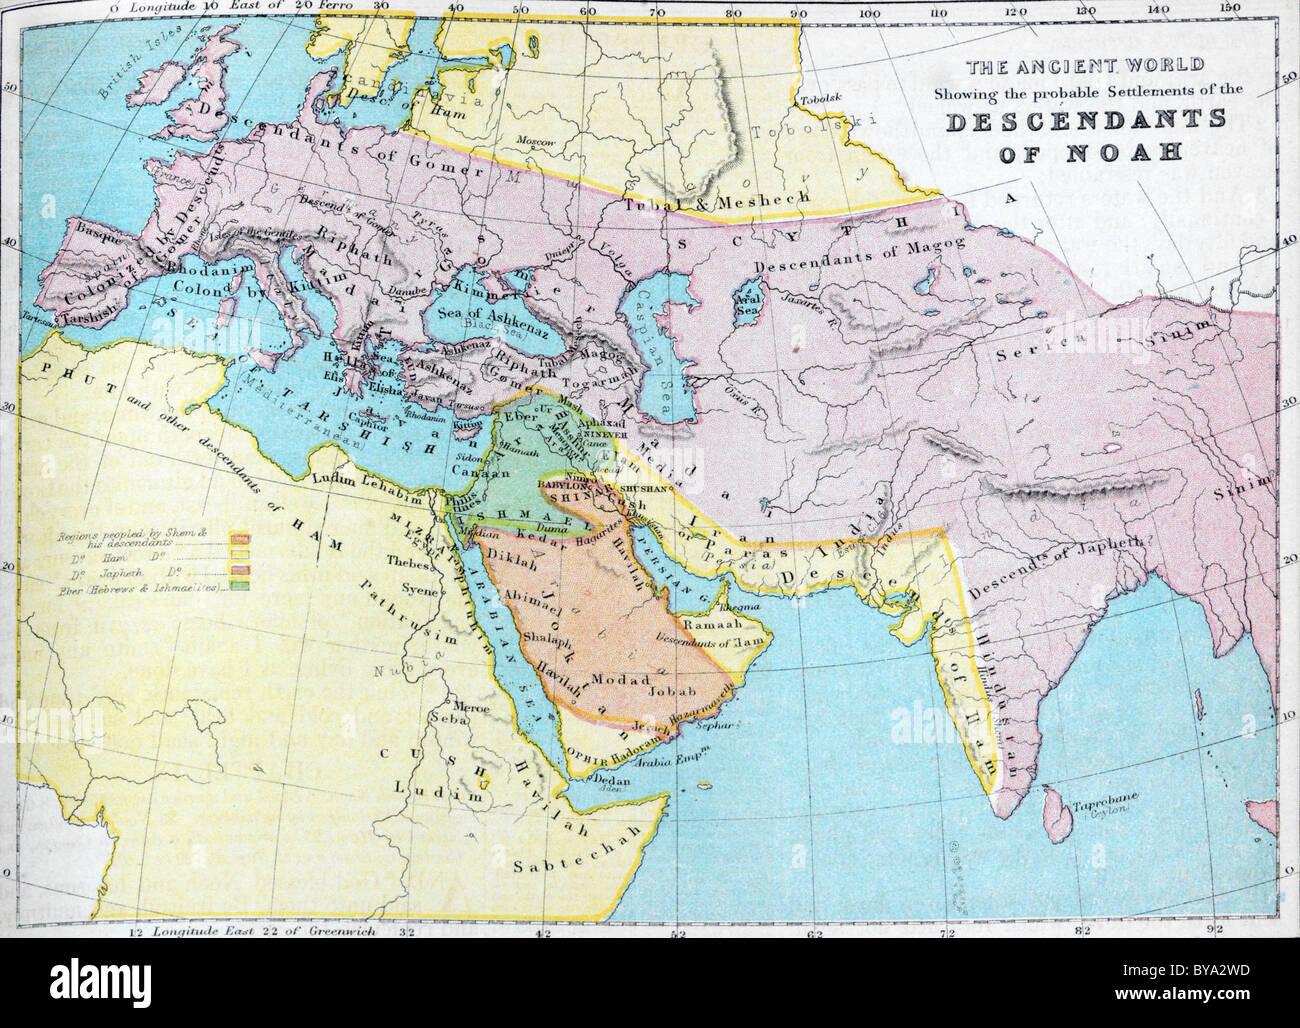 Map Of The Ancient World Showing The Probable Settlements Of The